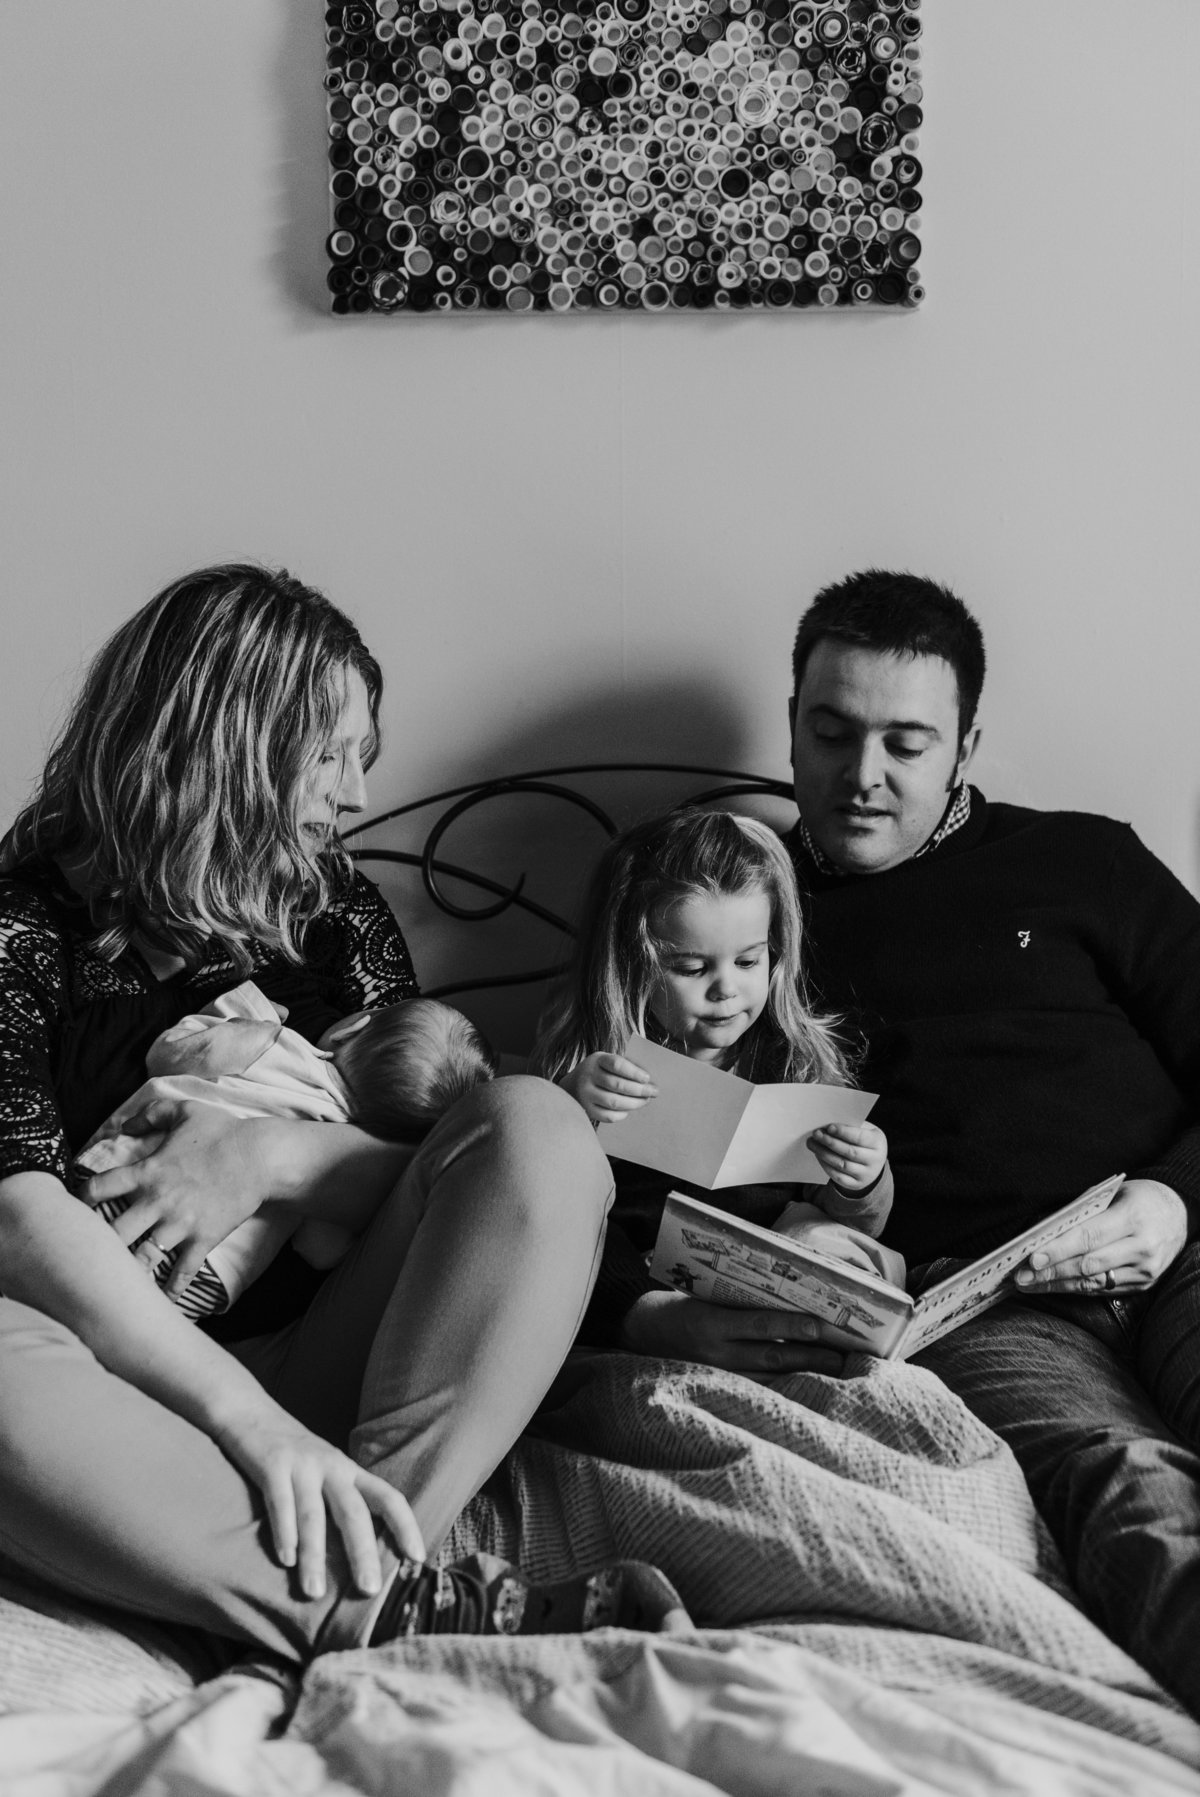 094-Gunns-Relaxed-Family-Photography-Leamington